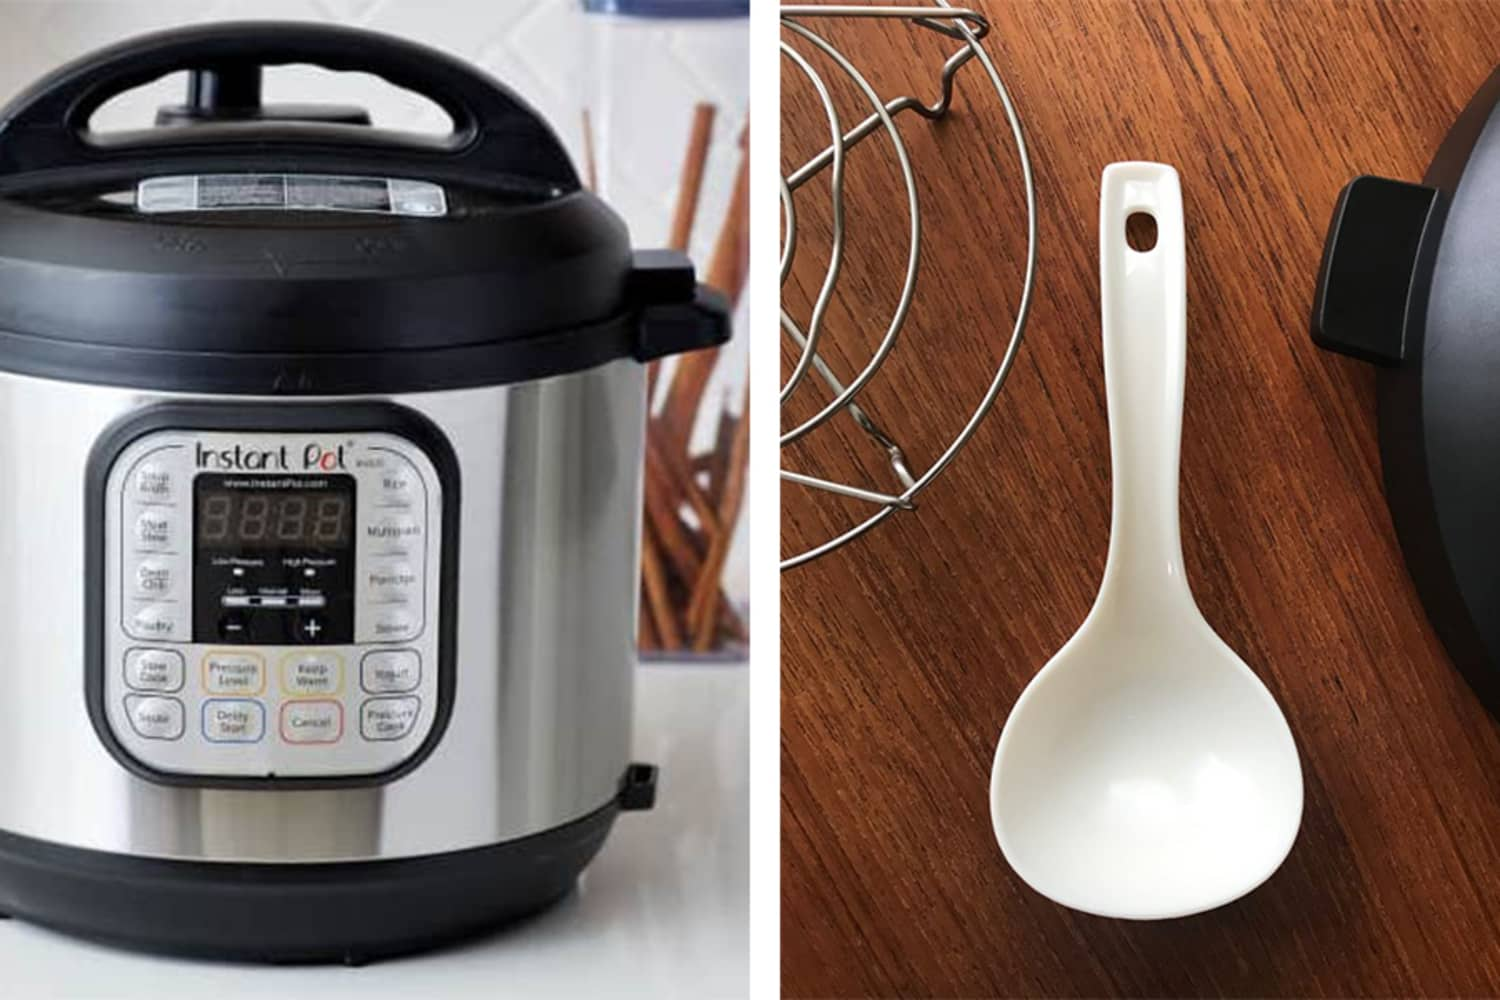 We Bet You Didn't Know Your Instant Pot Utensils Could Do These 3 Things